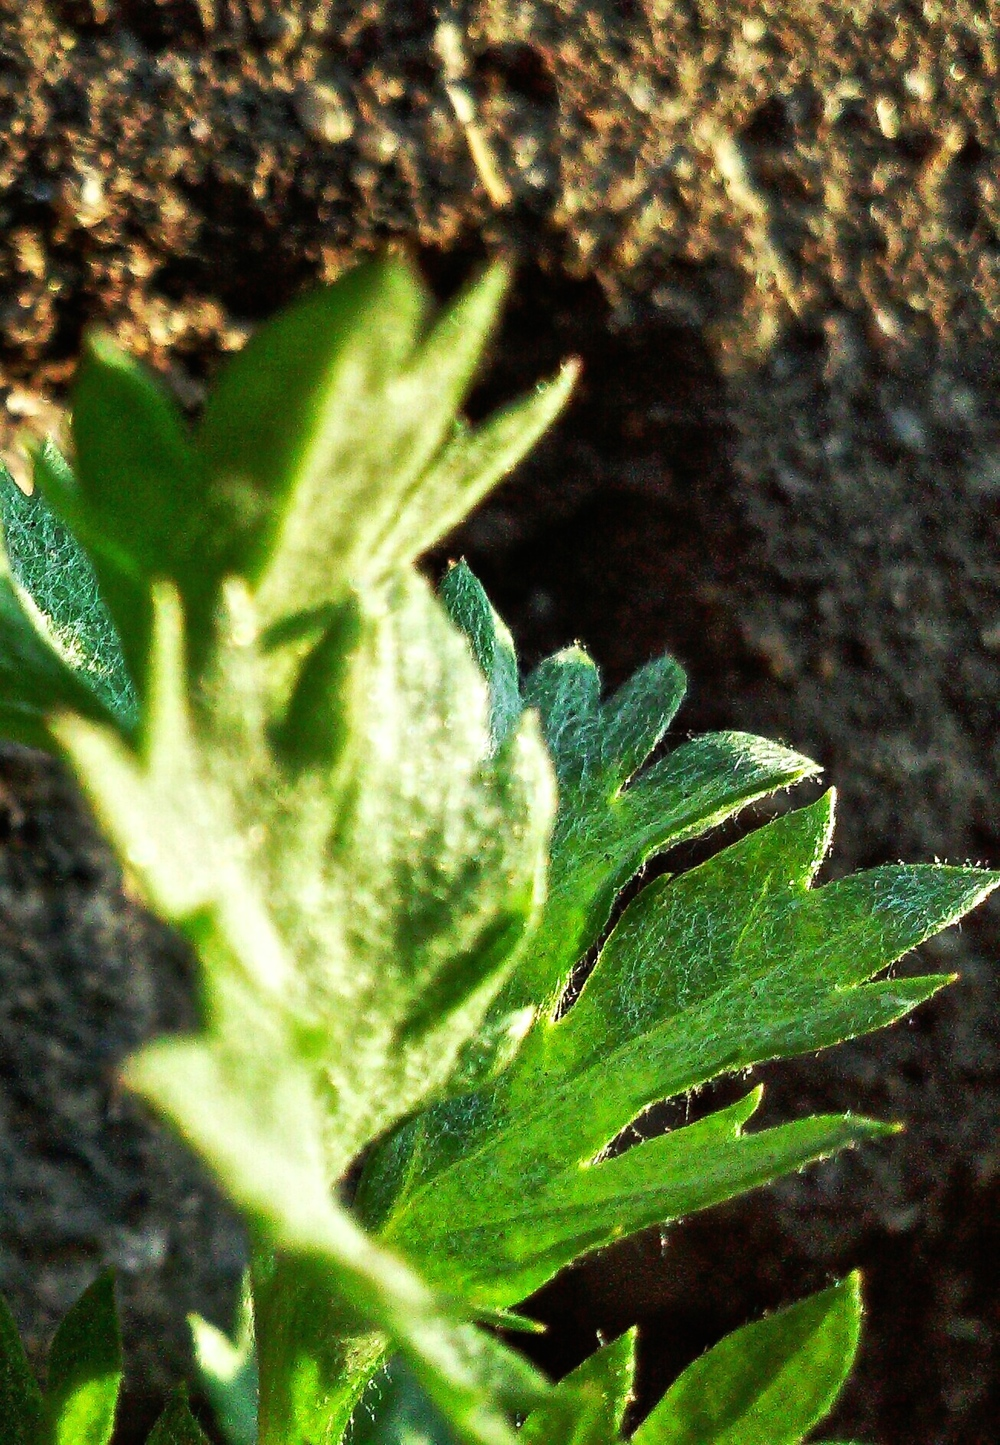 close-up-tiny-green-plant-wbc.jpg